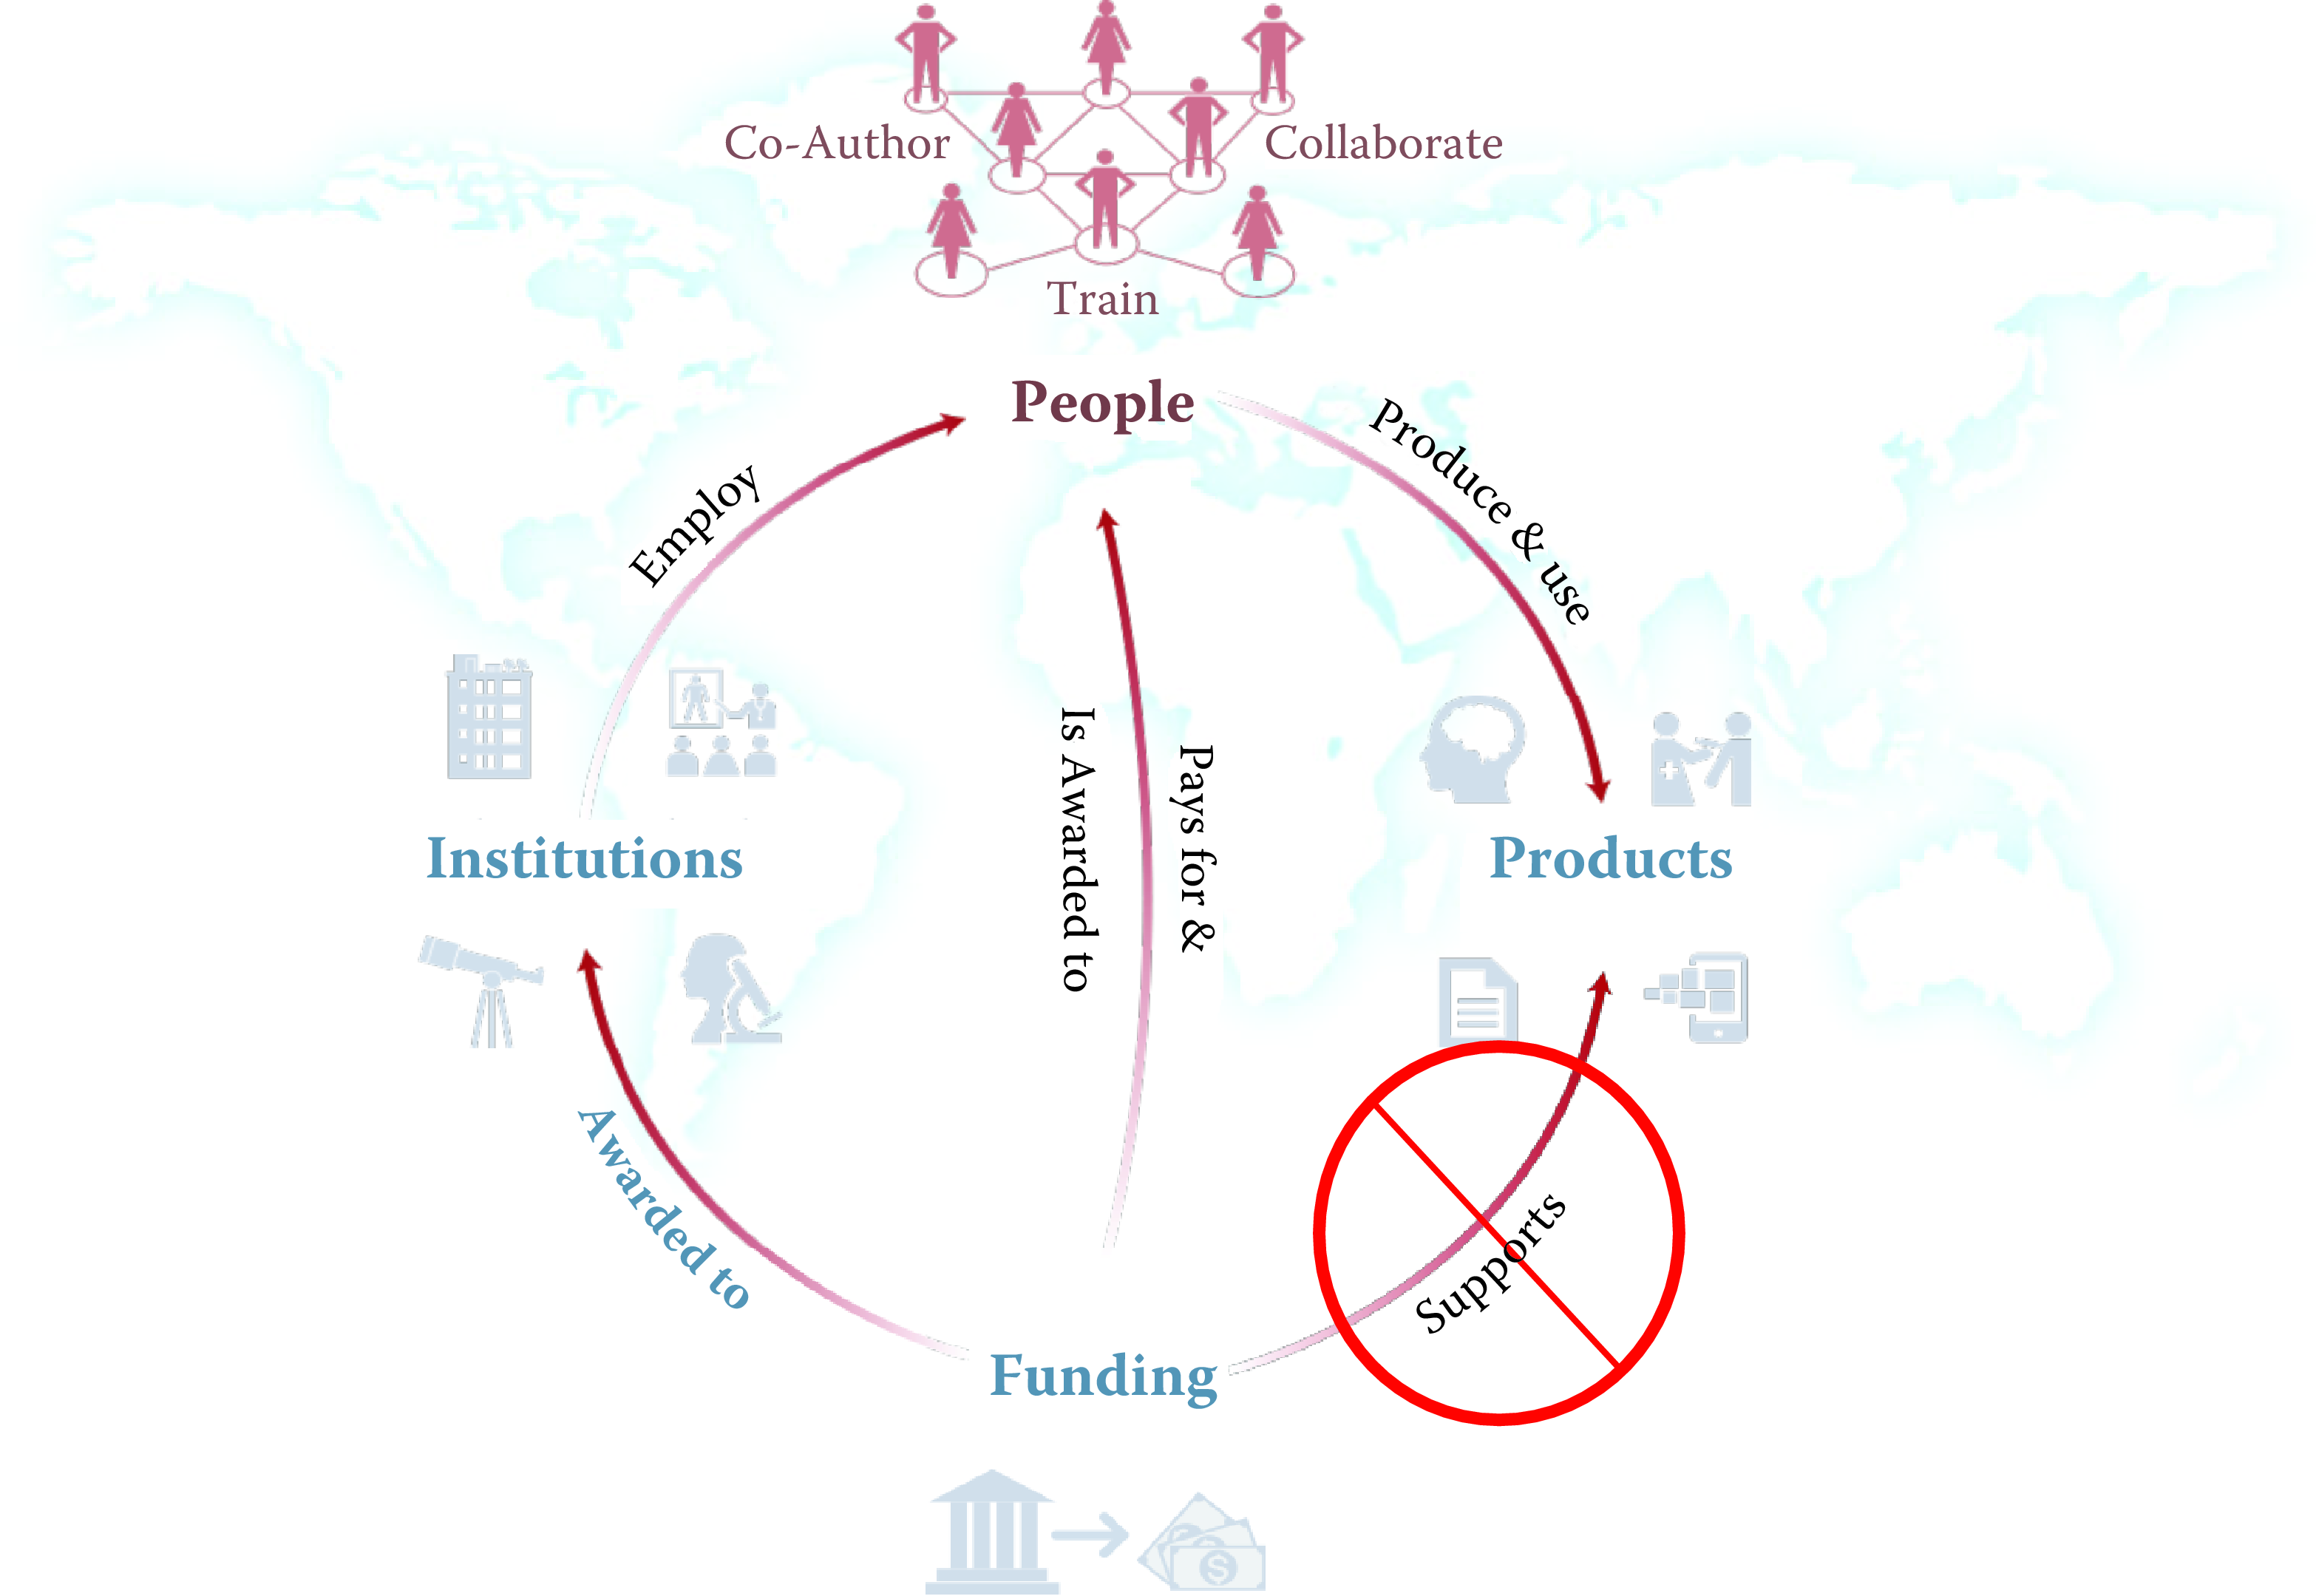 A visualization of the complex links between what and who is funded, and the results; tracing the direct link between funding and results is misleading and wrong